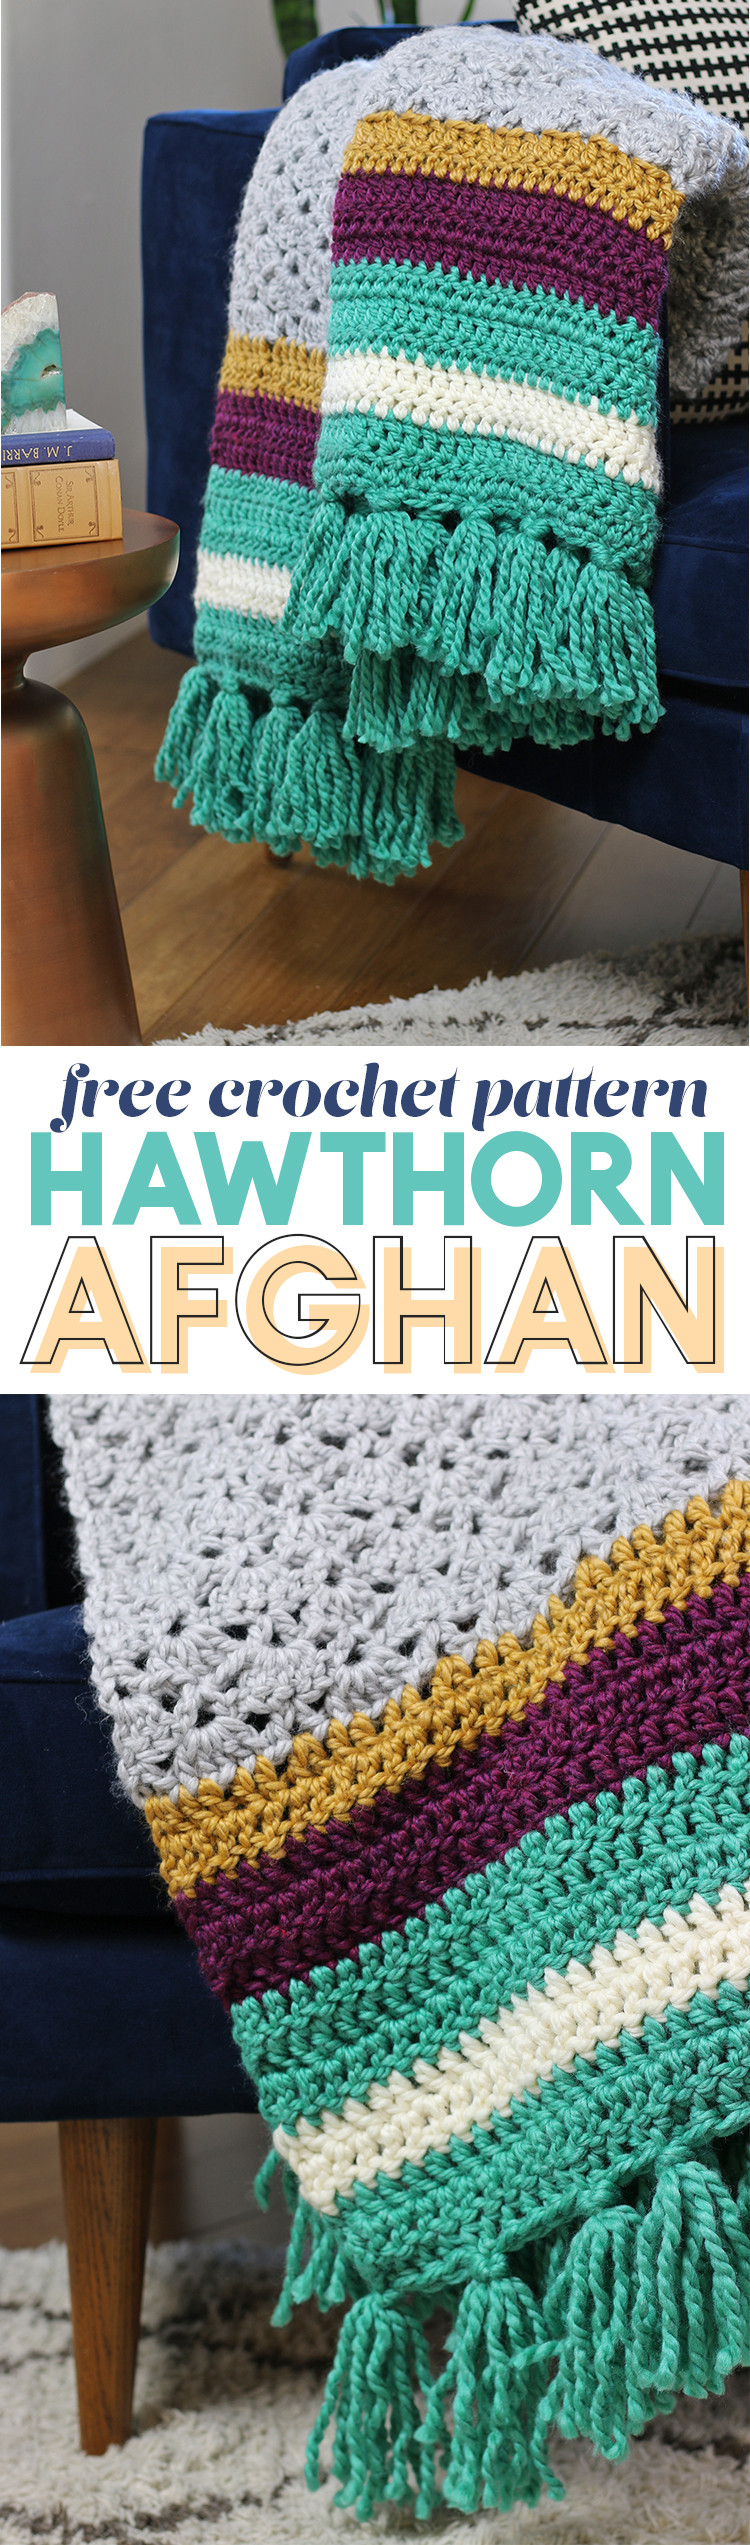 The Hawthorn Afghan Free Crochet Afghan Pattern Persia Lou